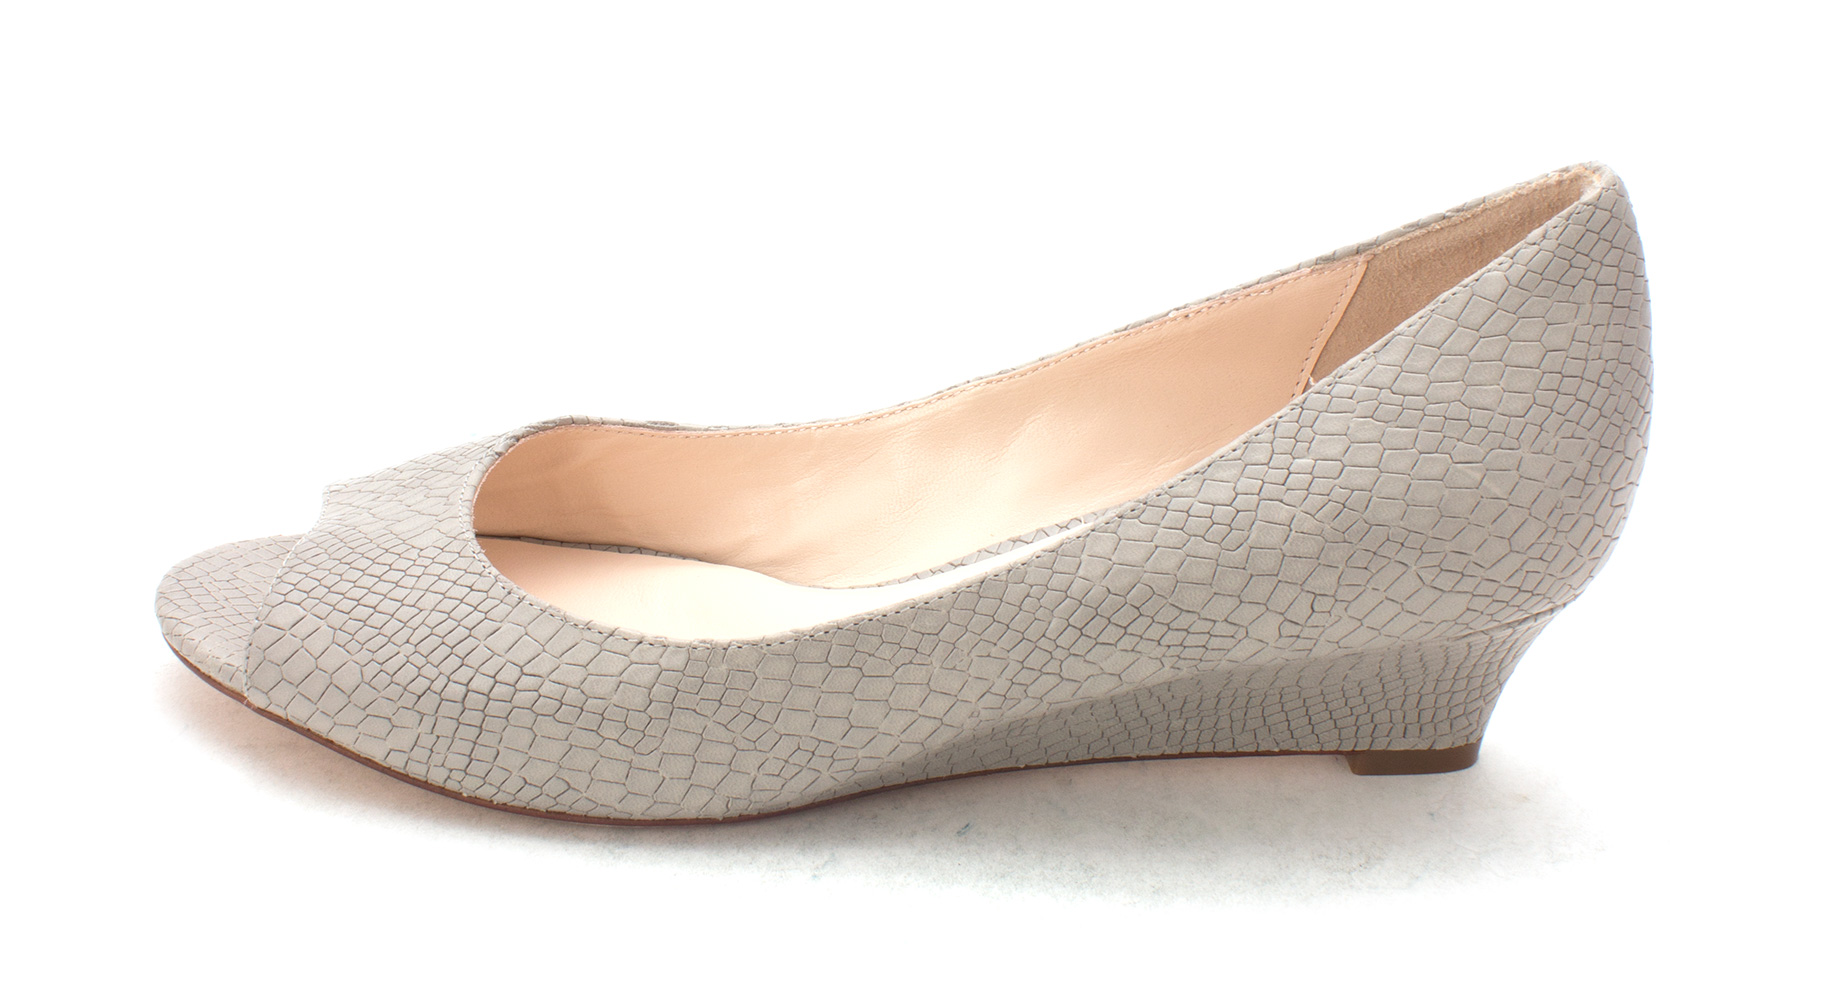 Cole Haan Womens 14A4016 Peep Toe Wedge Pumps Paloma Size 6.0